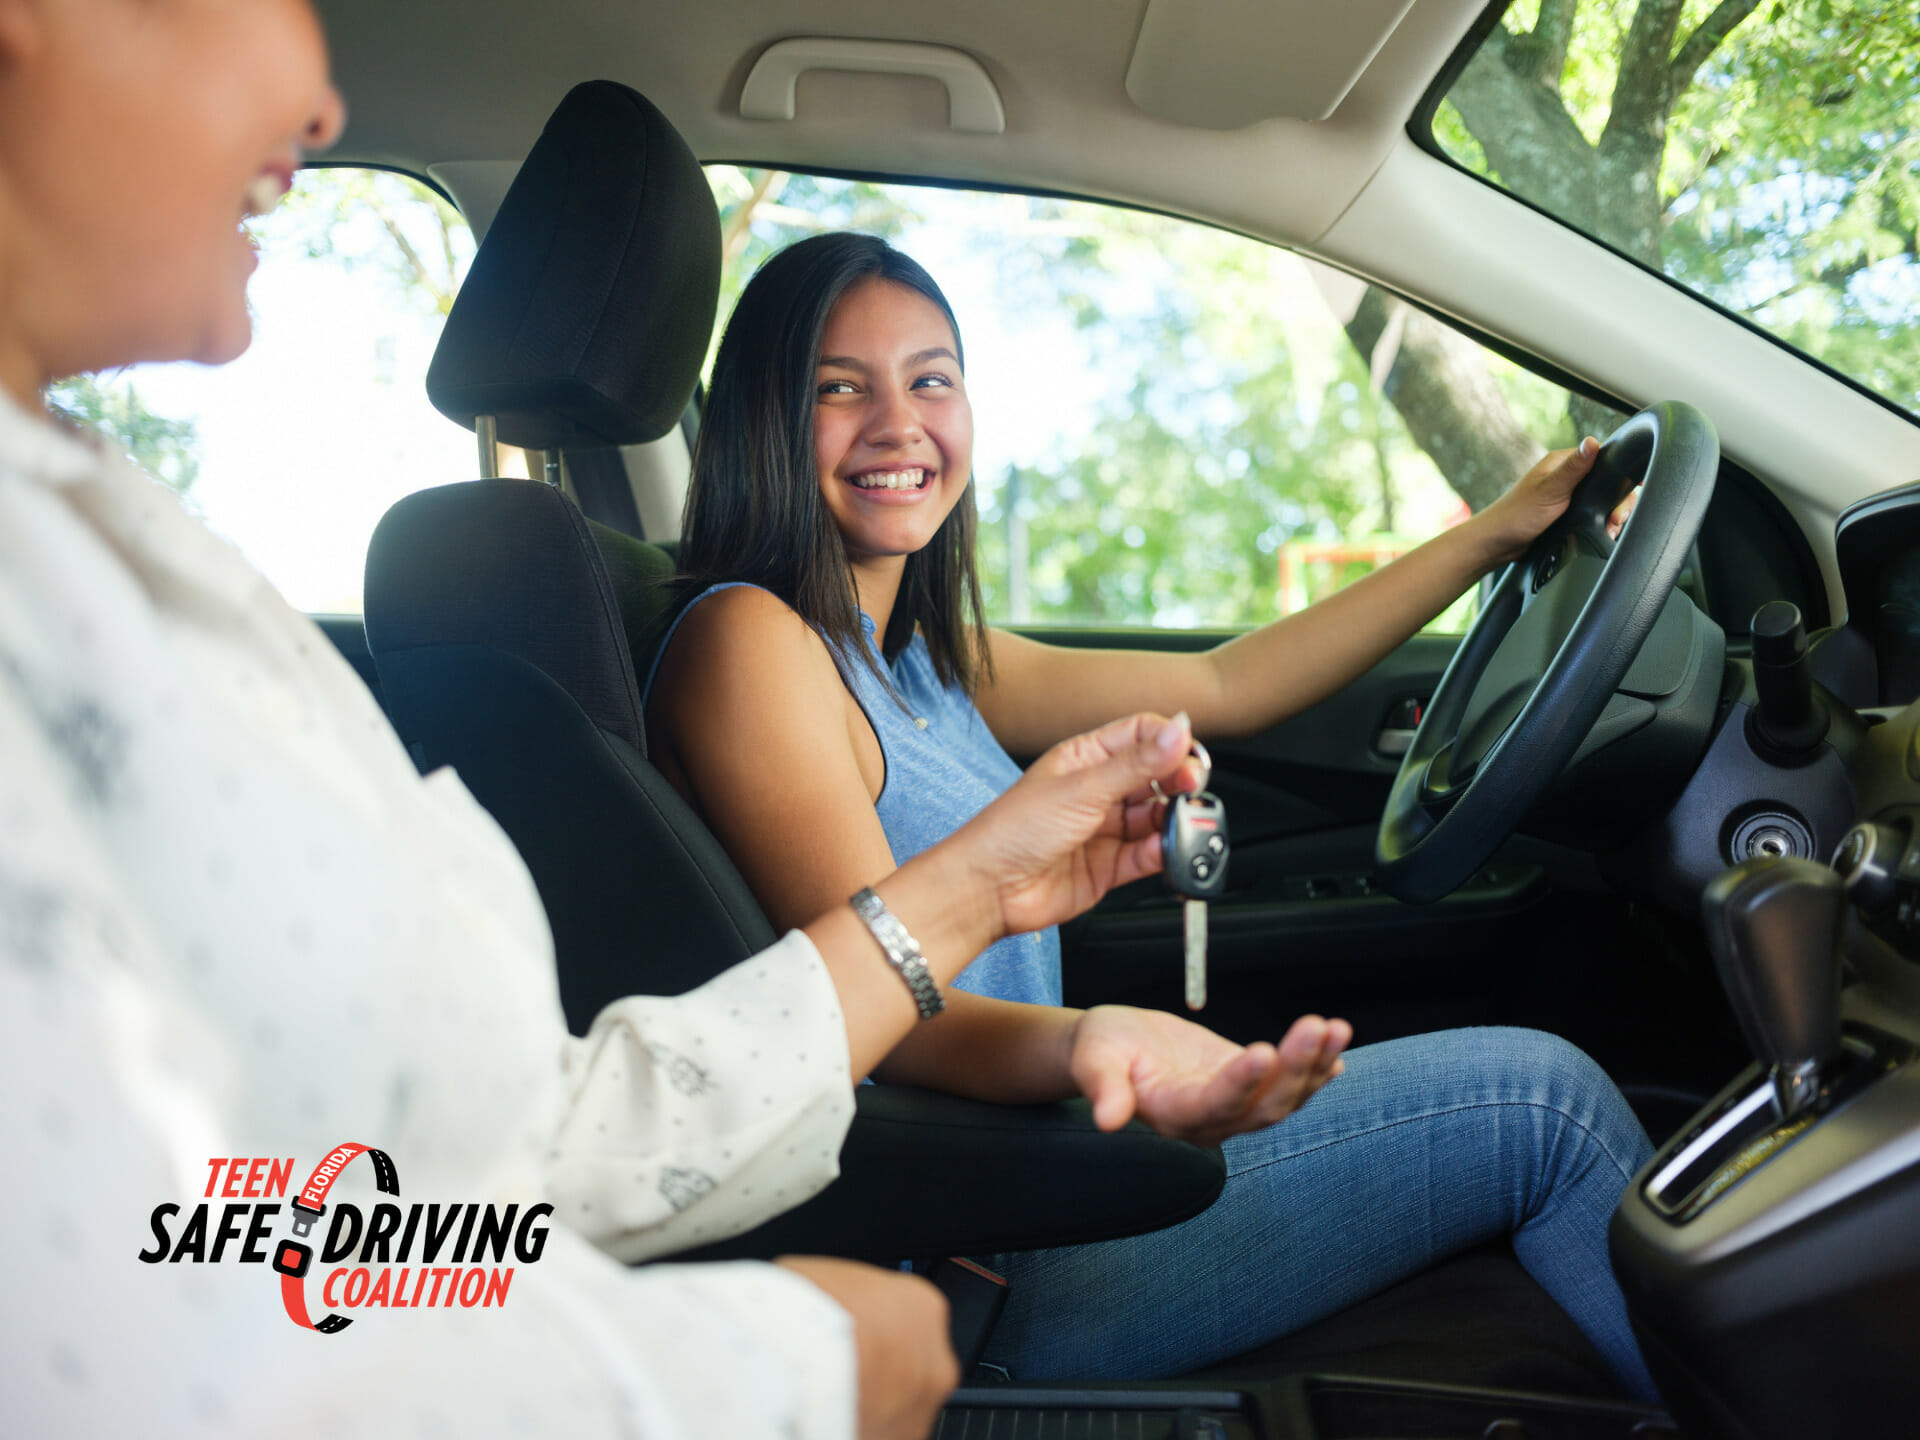 5 Important Things to Teach Your Teen Before They Drive